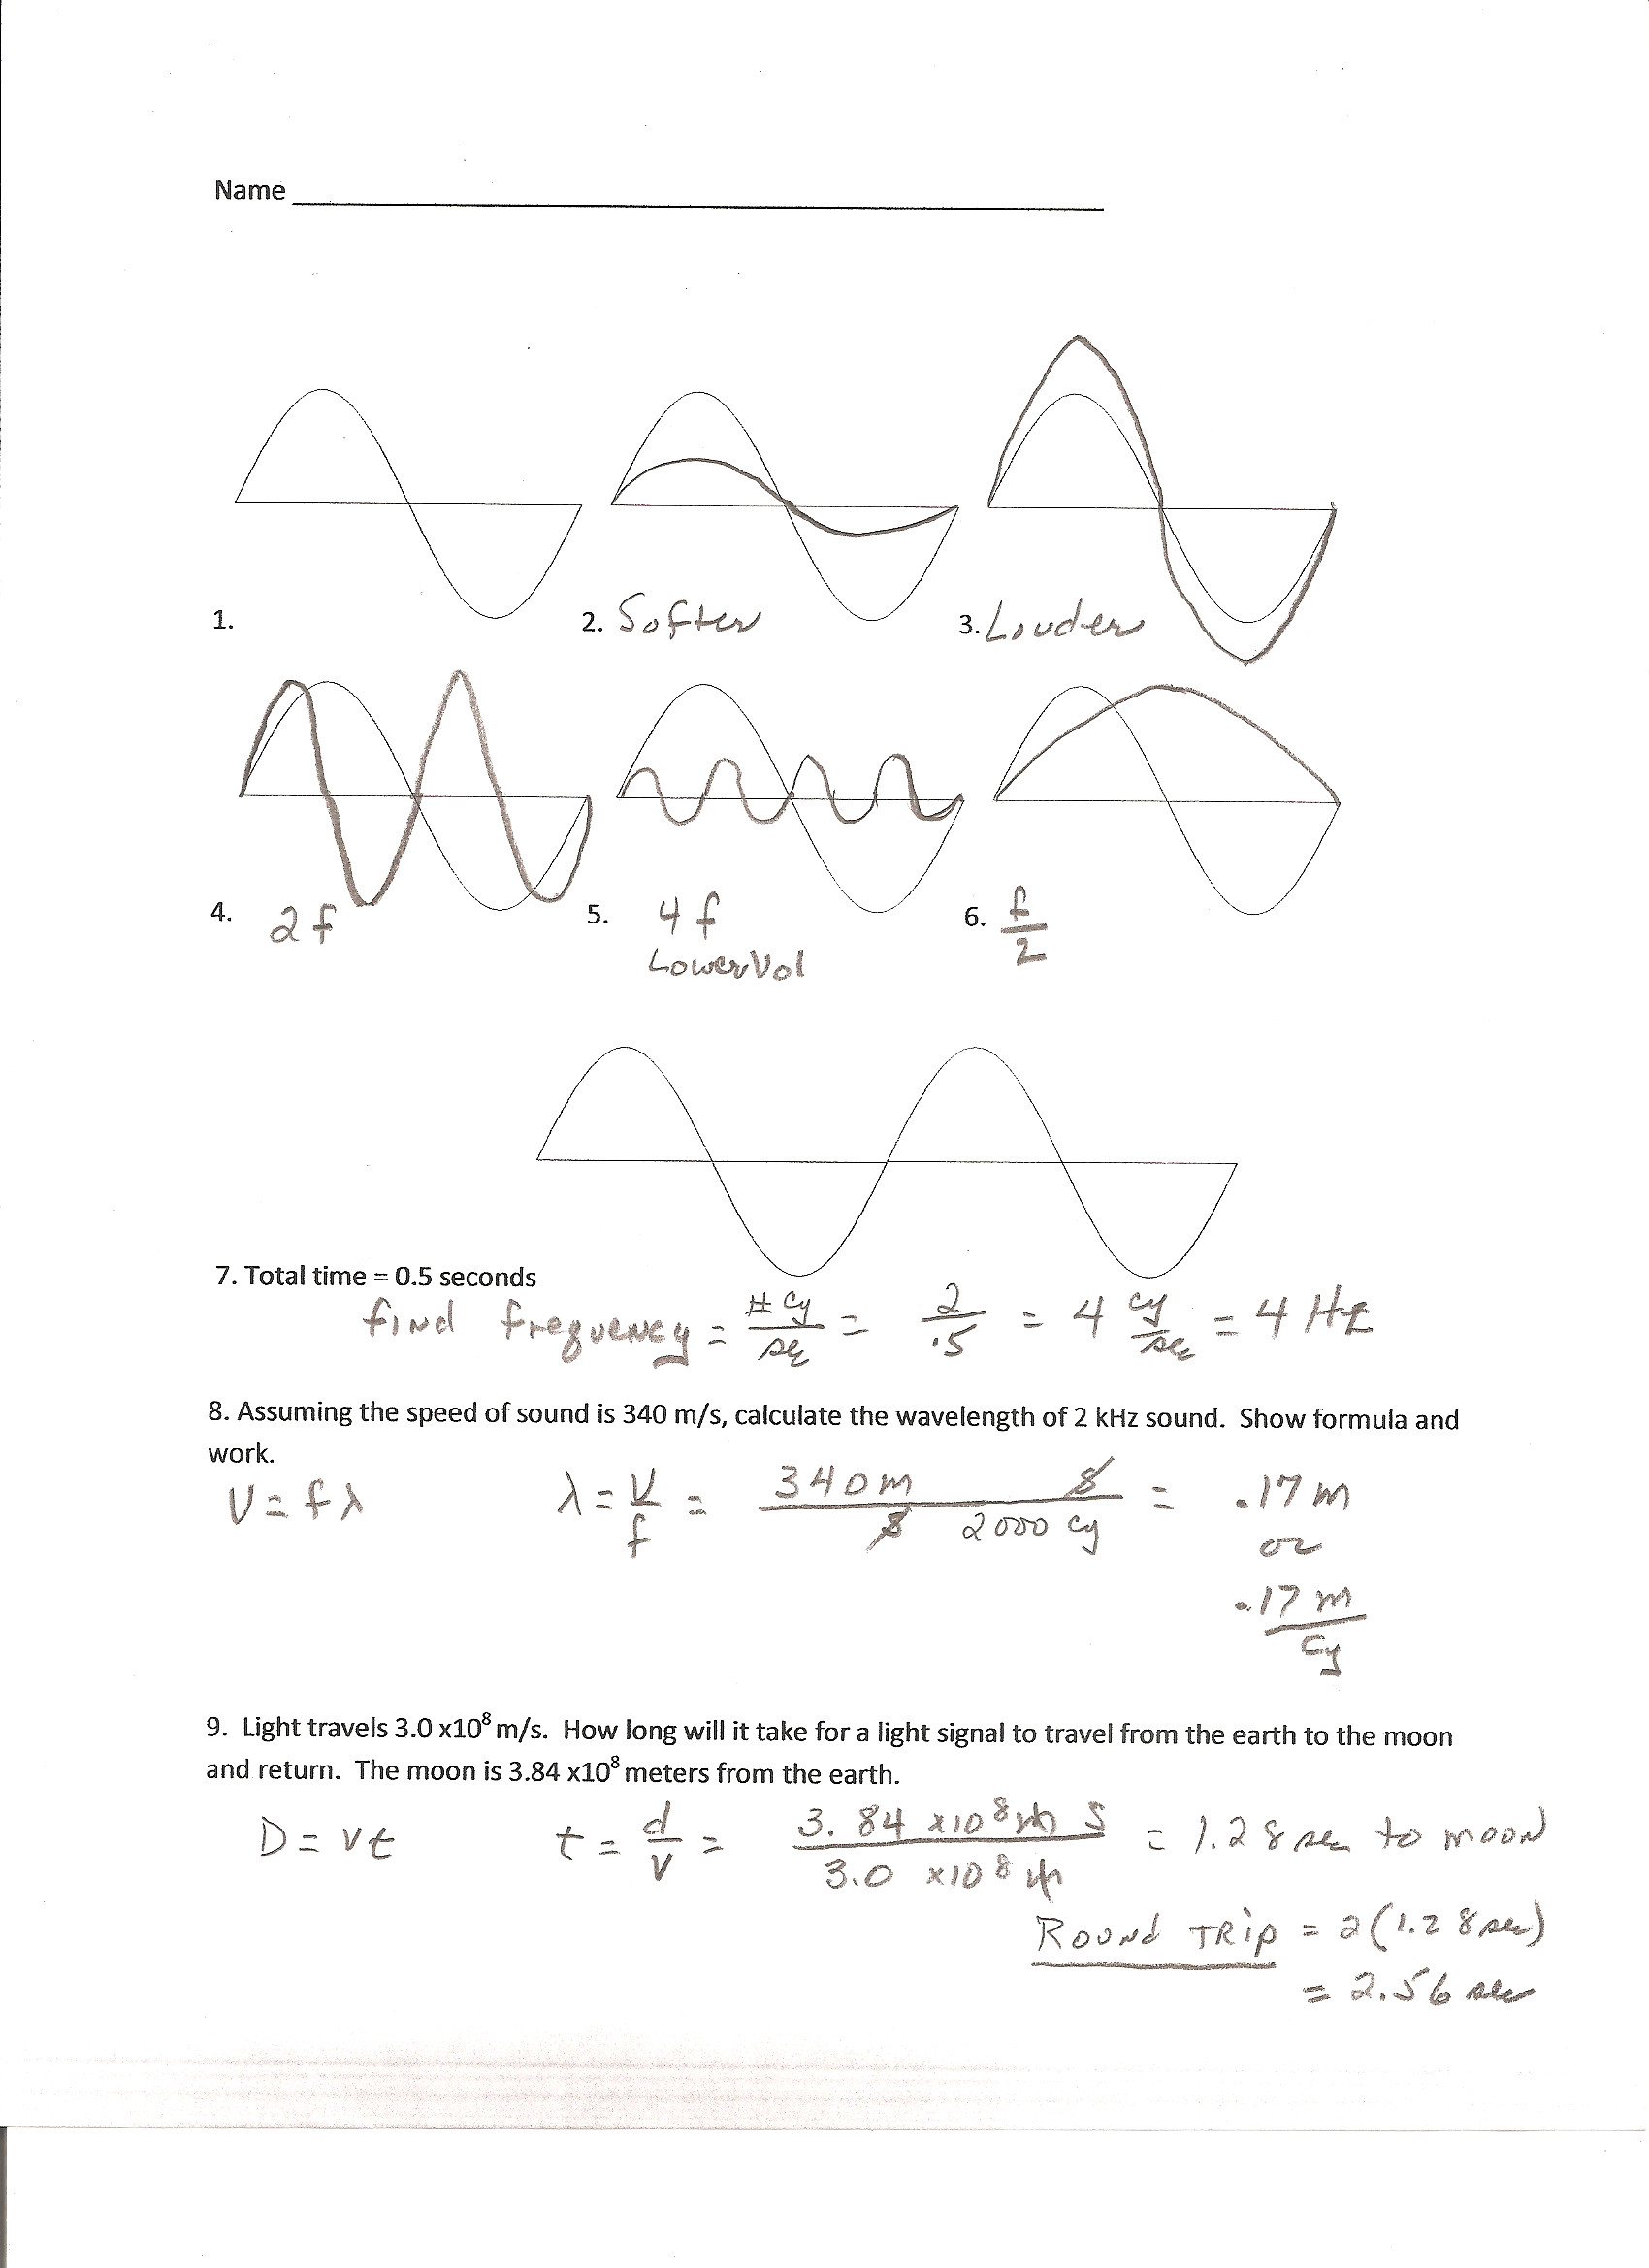 Waves Worksheet 1 Answers 35 Waves Review Worksheet Answer Key Worksheet Resource Plans